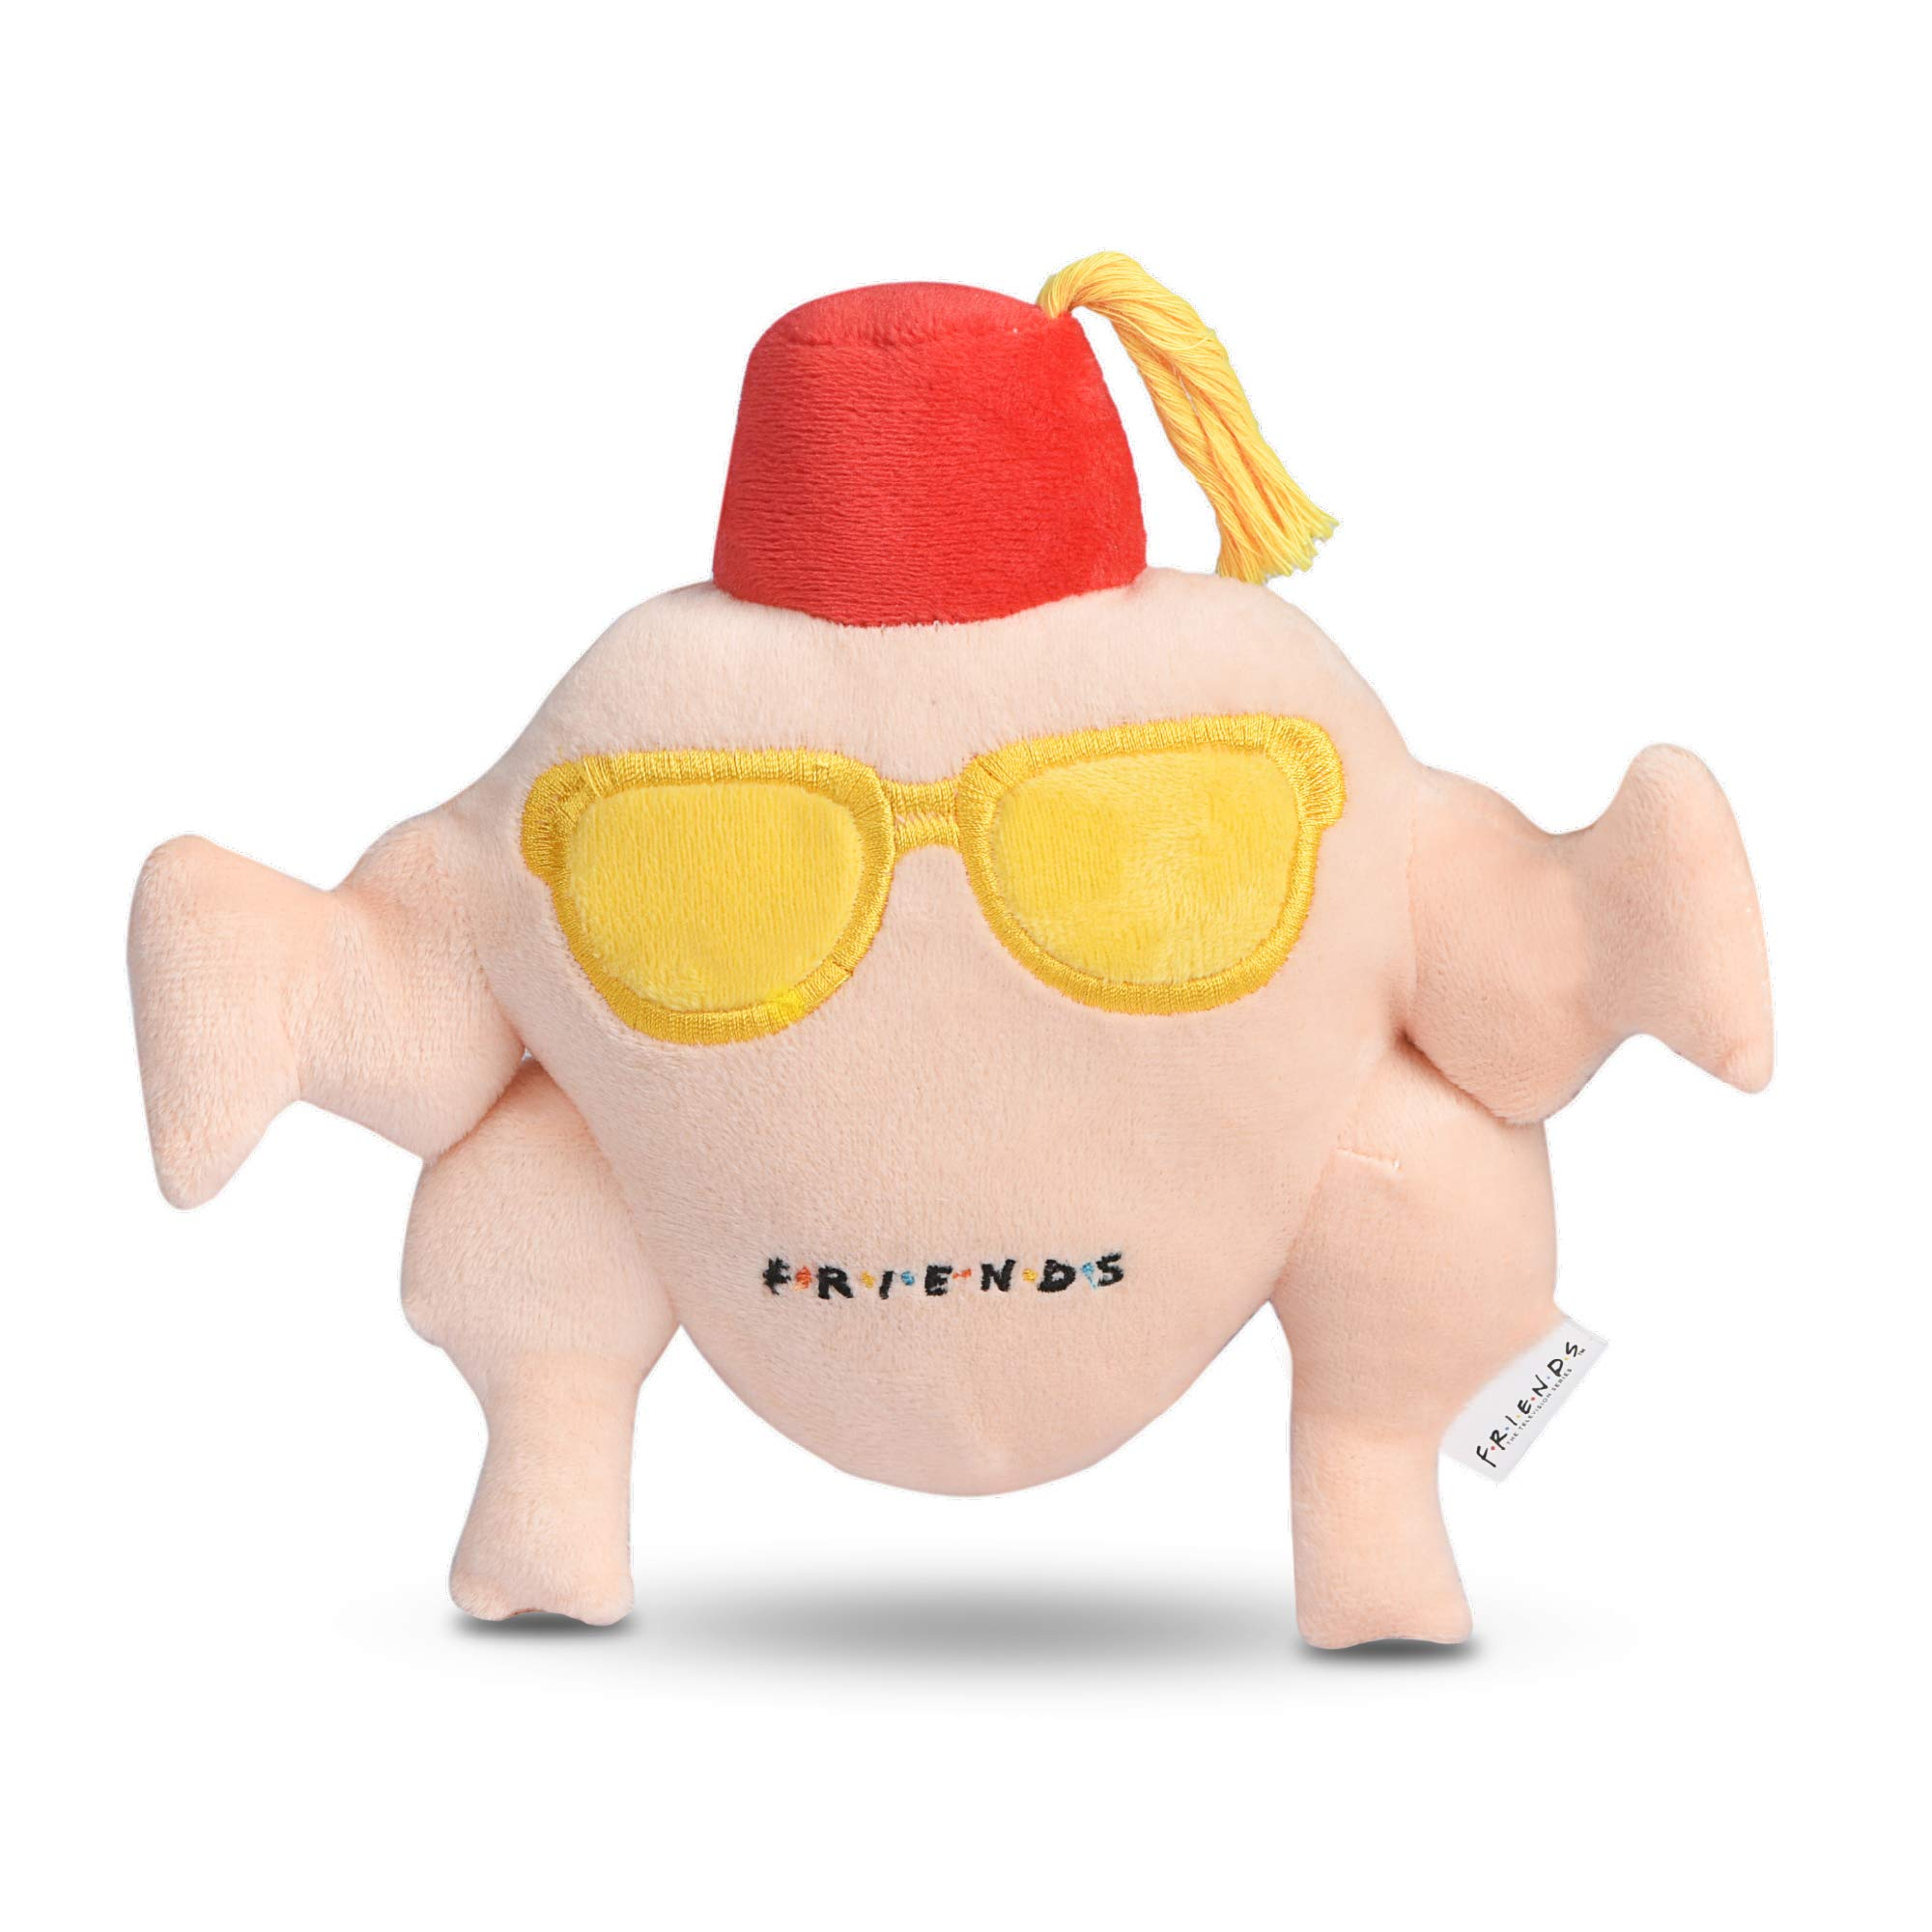 Warner Brothers for Pets Friends TV Show Dog Toy | Cute Squeaky Toy for All Dogs | Stuffed Dog Toys With Squeaker, Friends Memorabilia | Friends TV Show Merchandise Plush Dog Toy